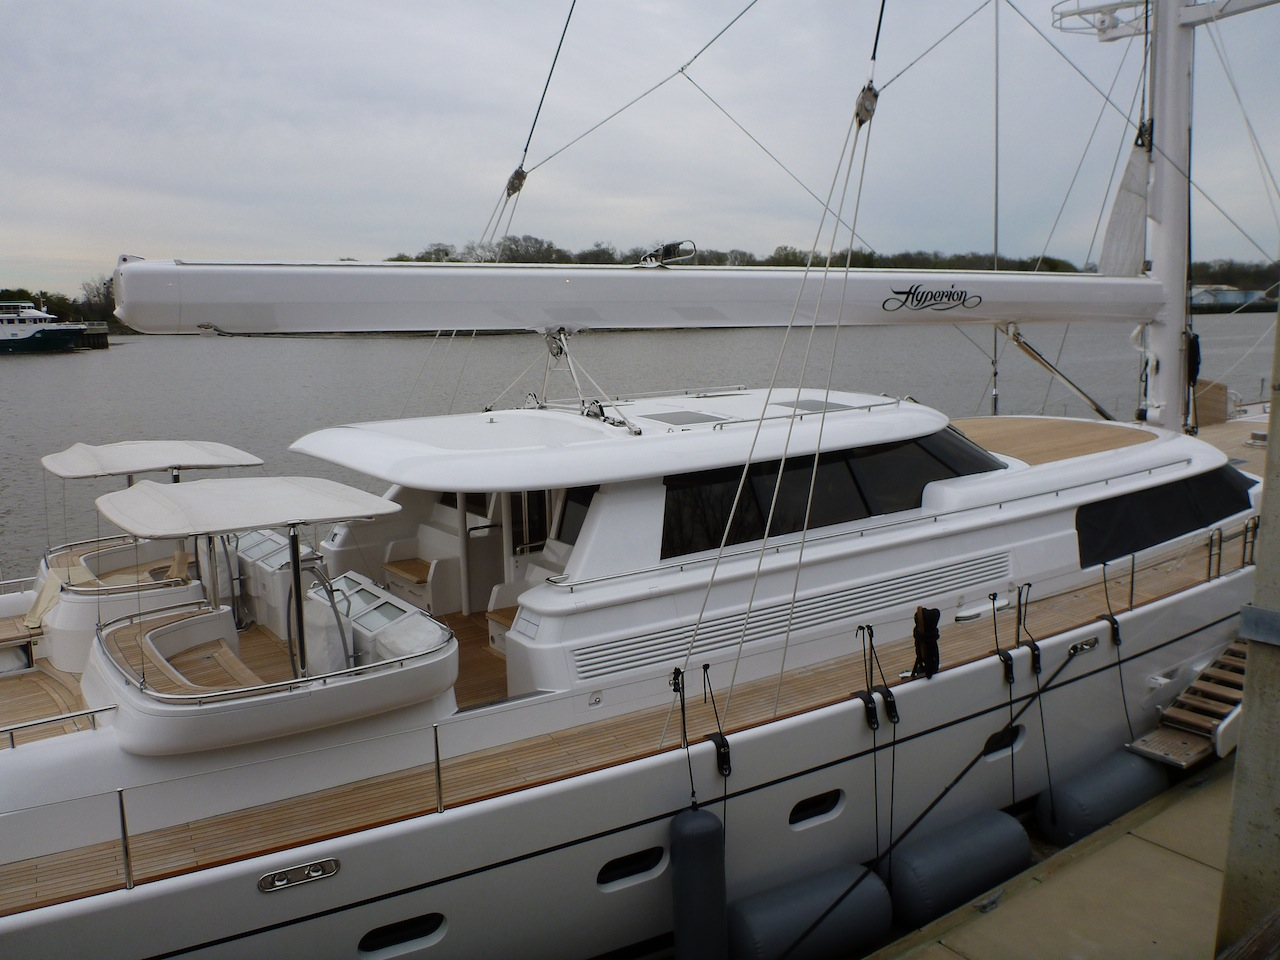 The Hyperion, A Private Sailboat